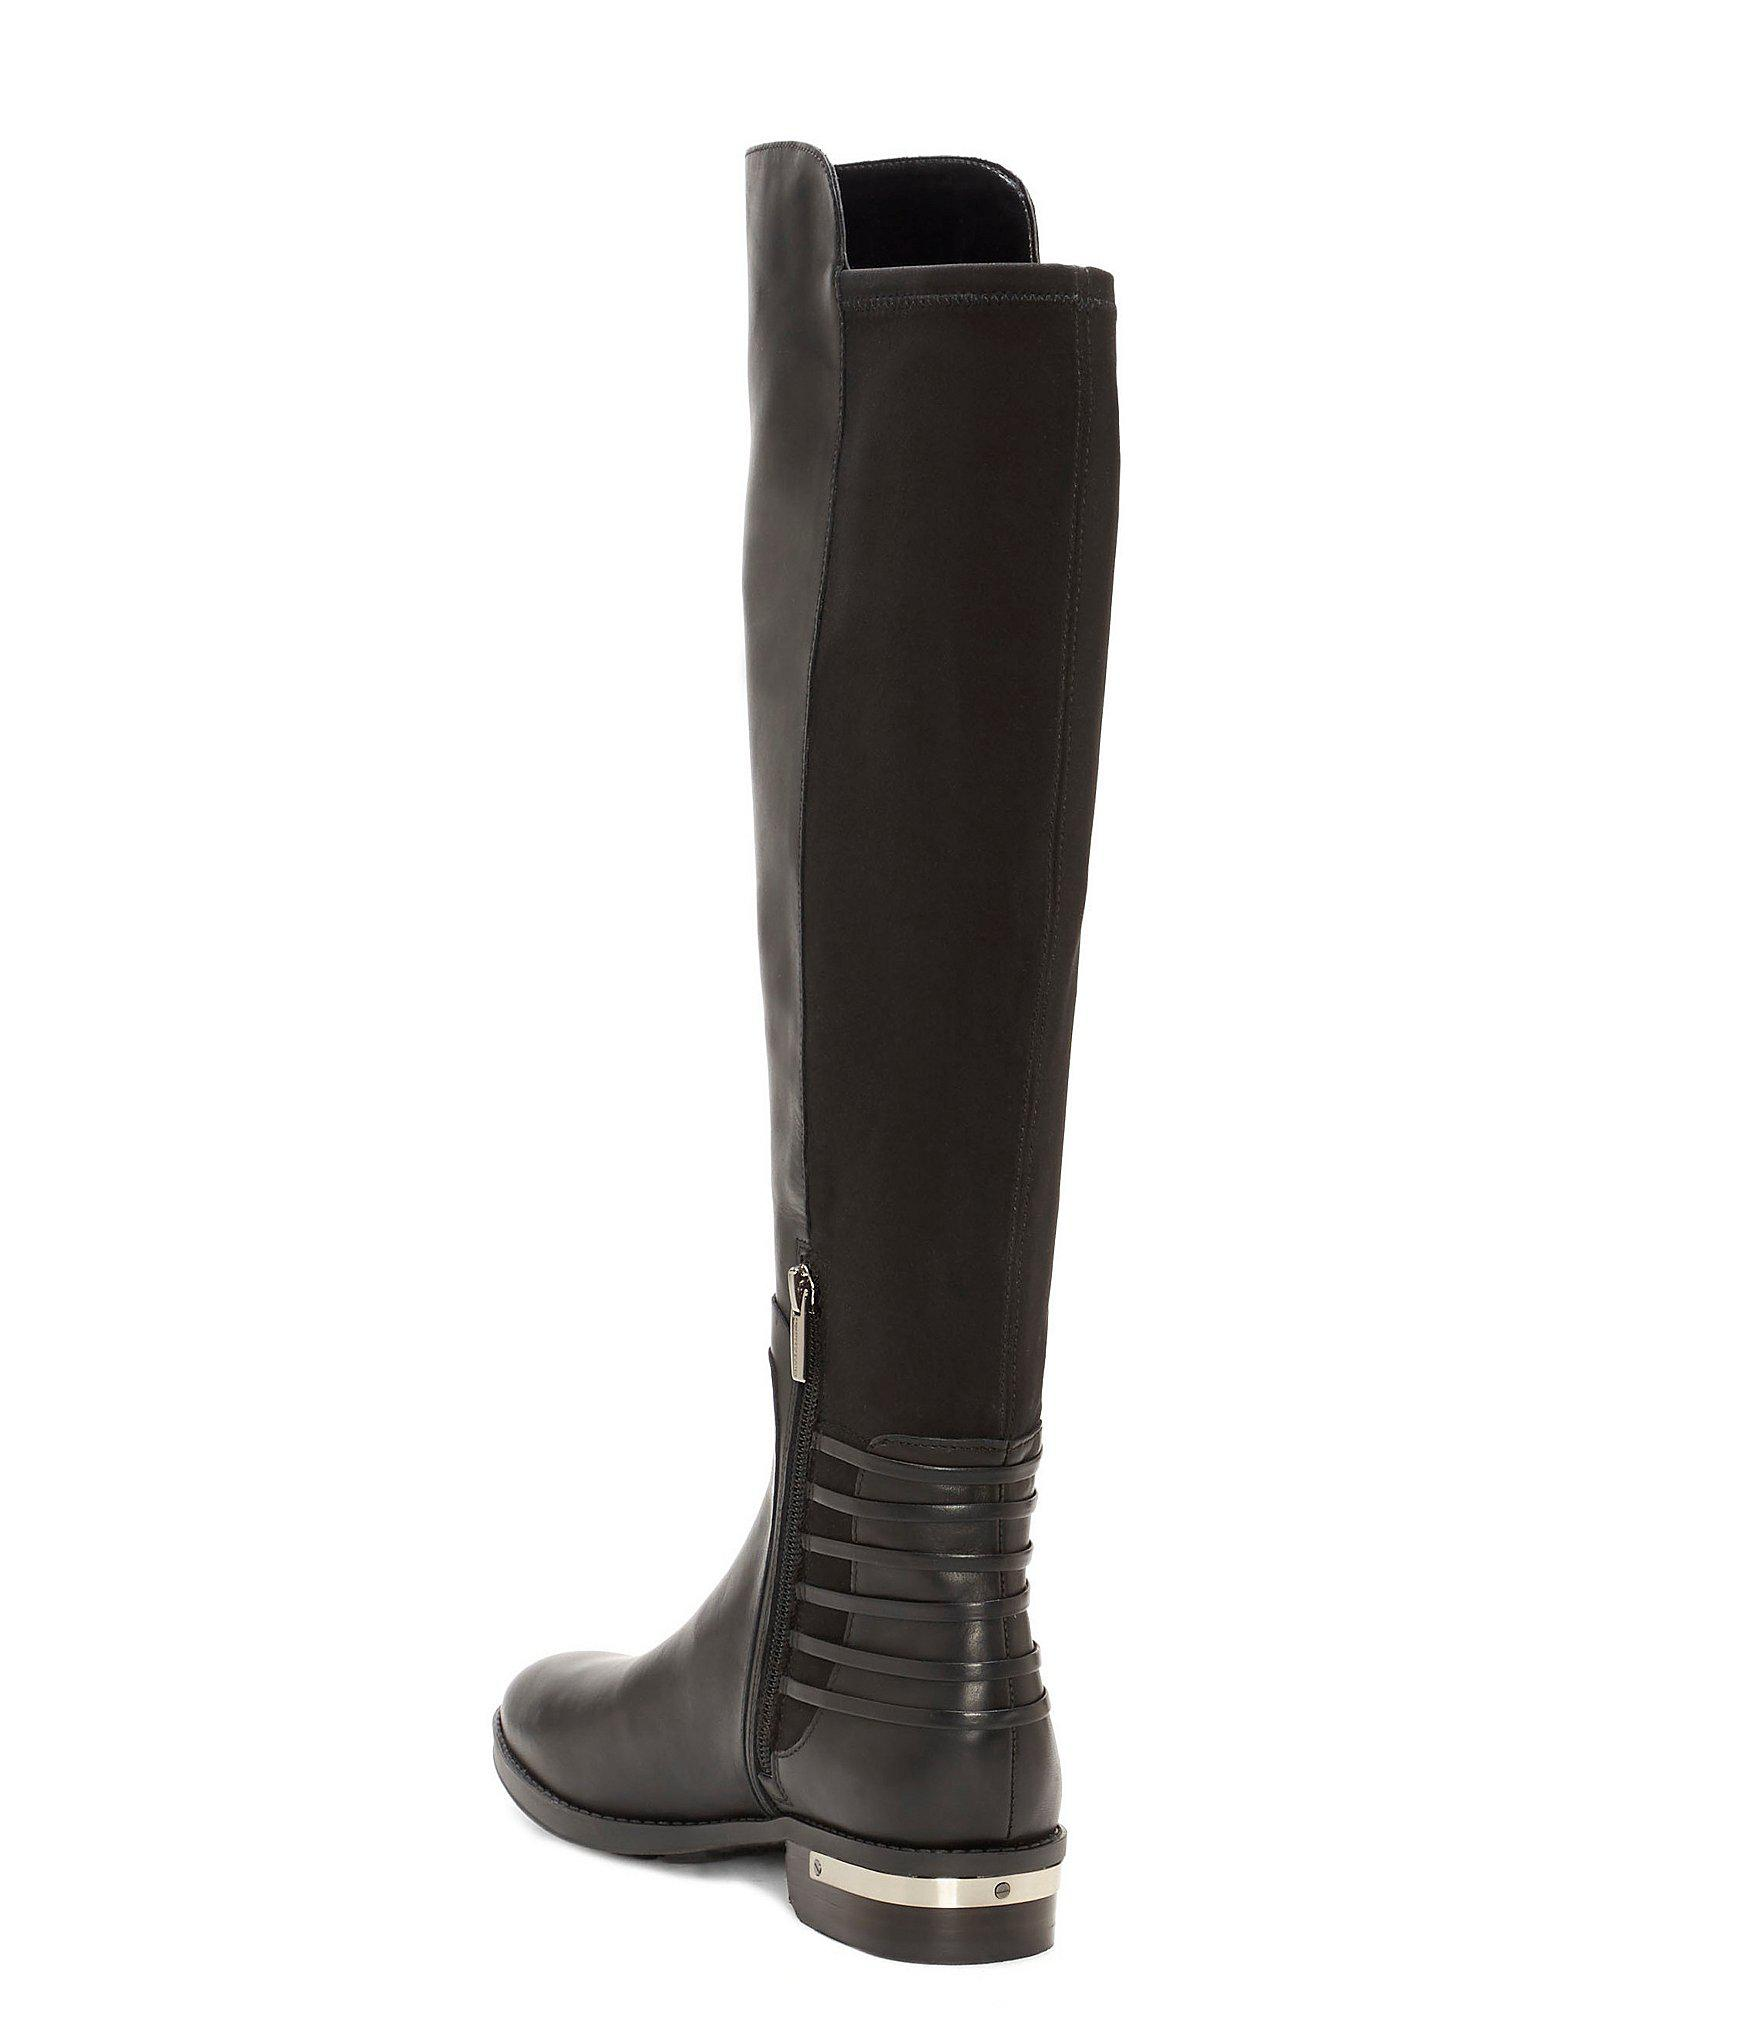 027380c0ca3 Lyst - Vince Camuto Payge Leather Over The Knee Riding Boots in Black